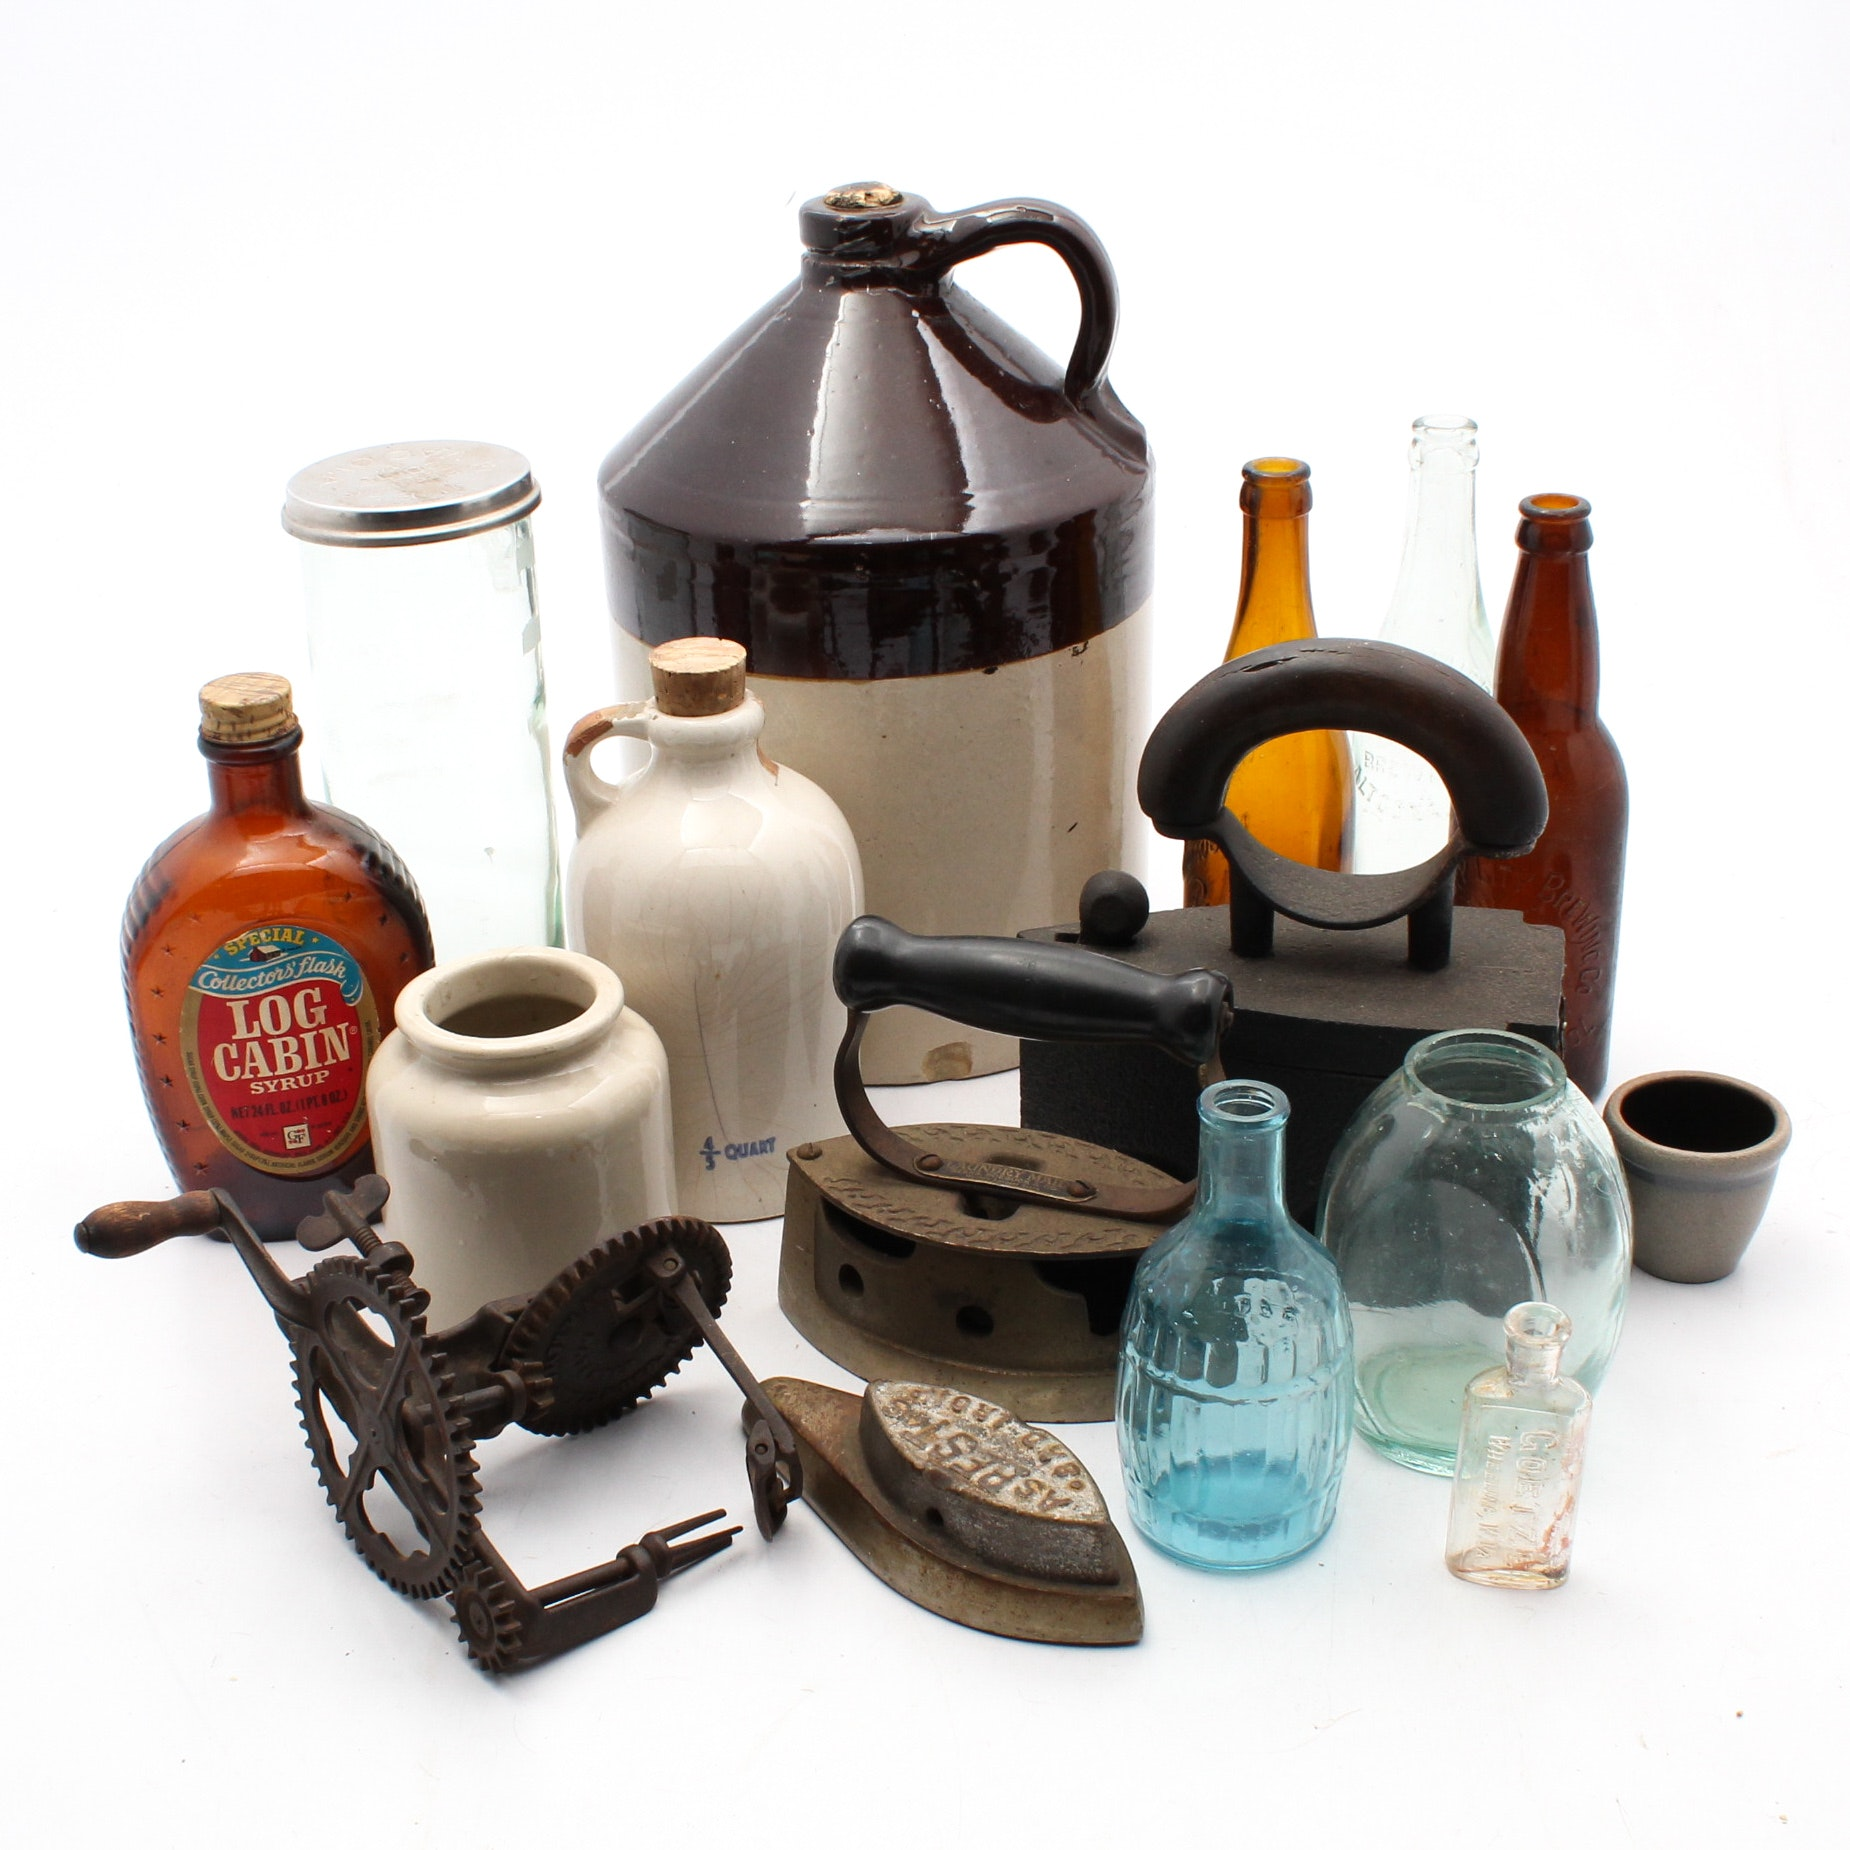 Antique and Vintage Cast Iron, Crocks and Bottles Collection